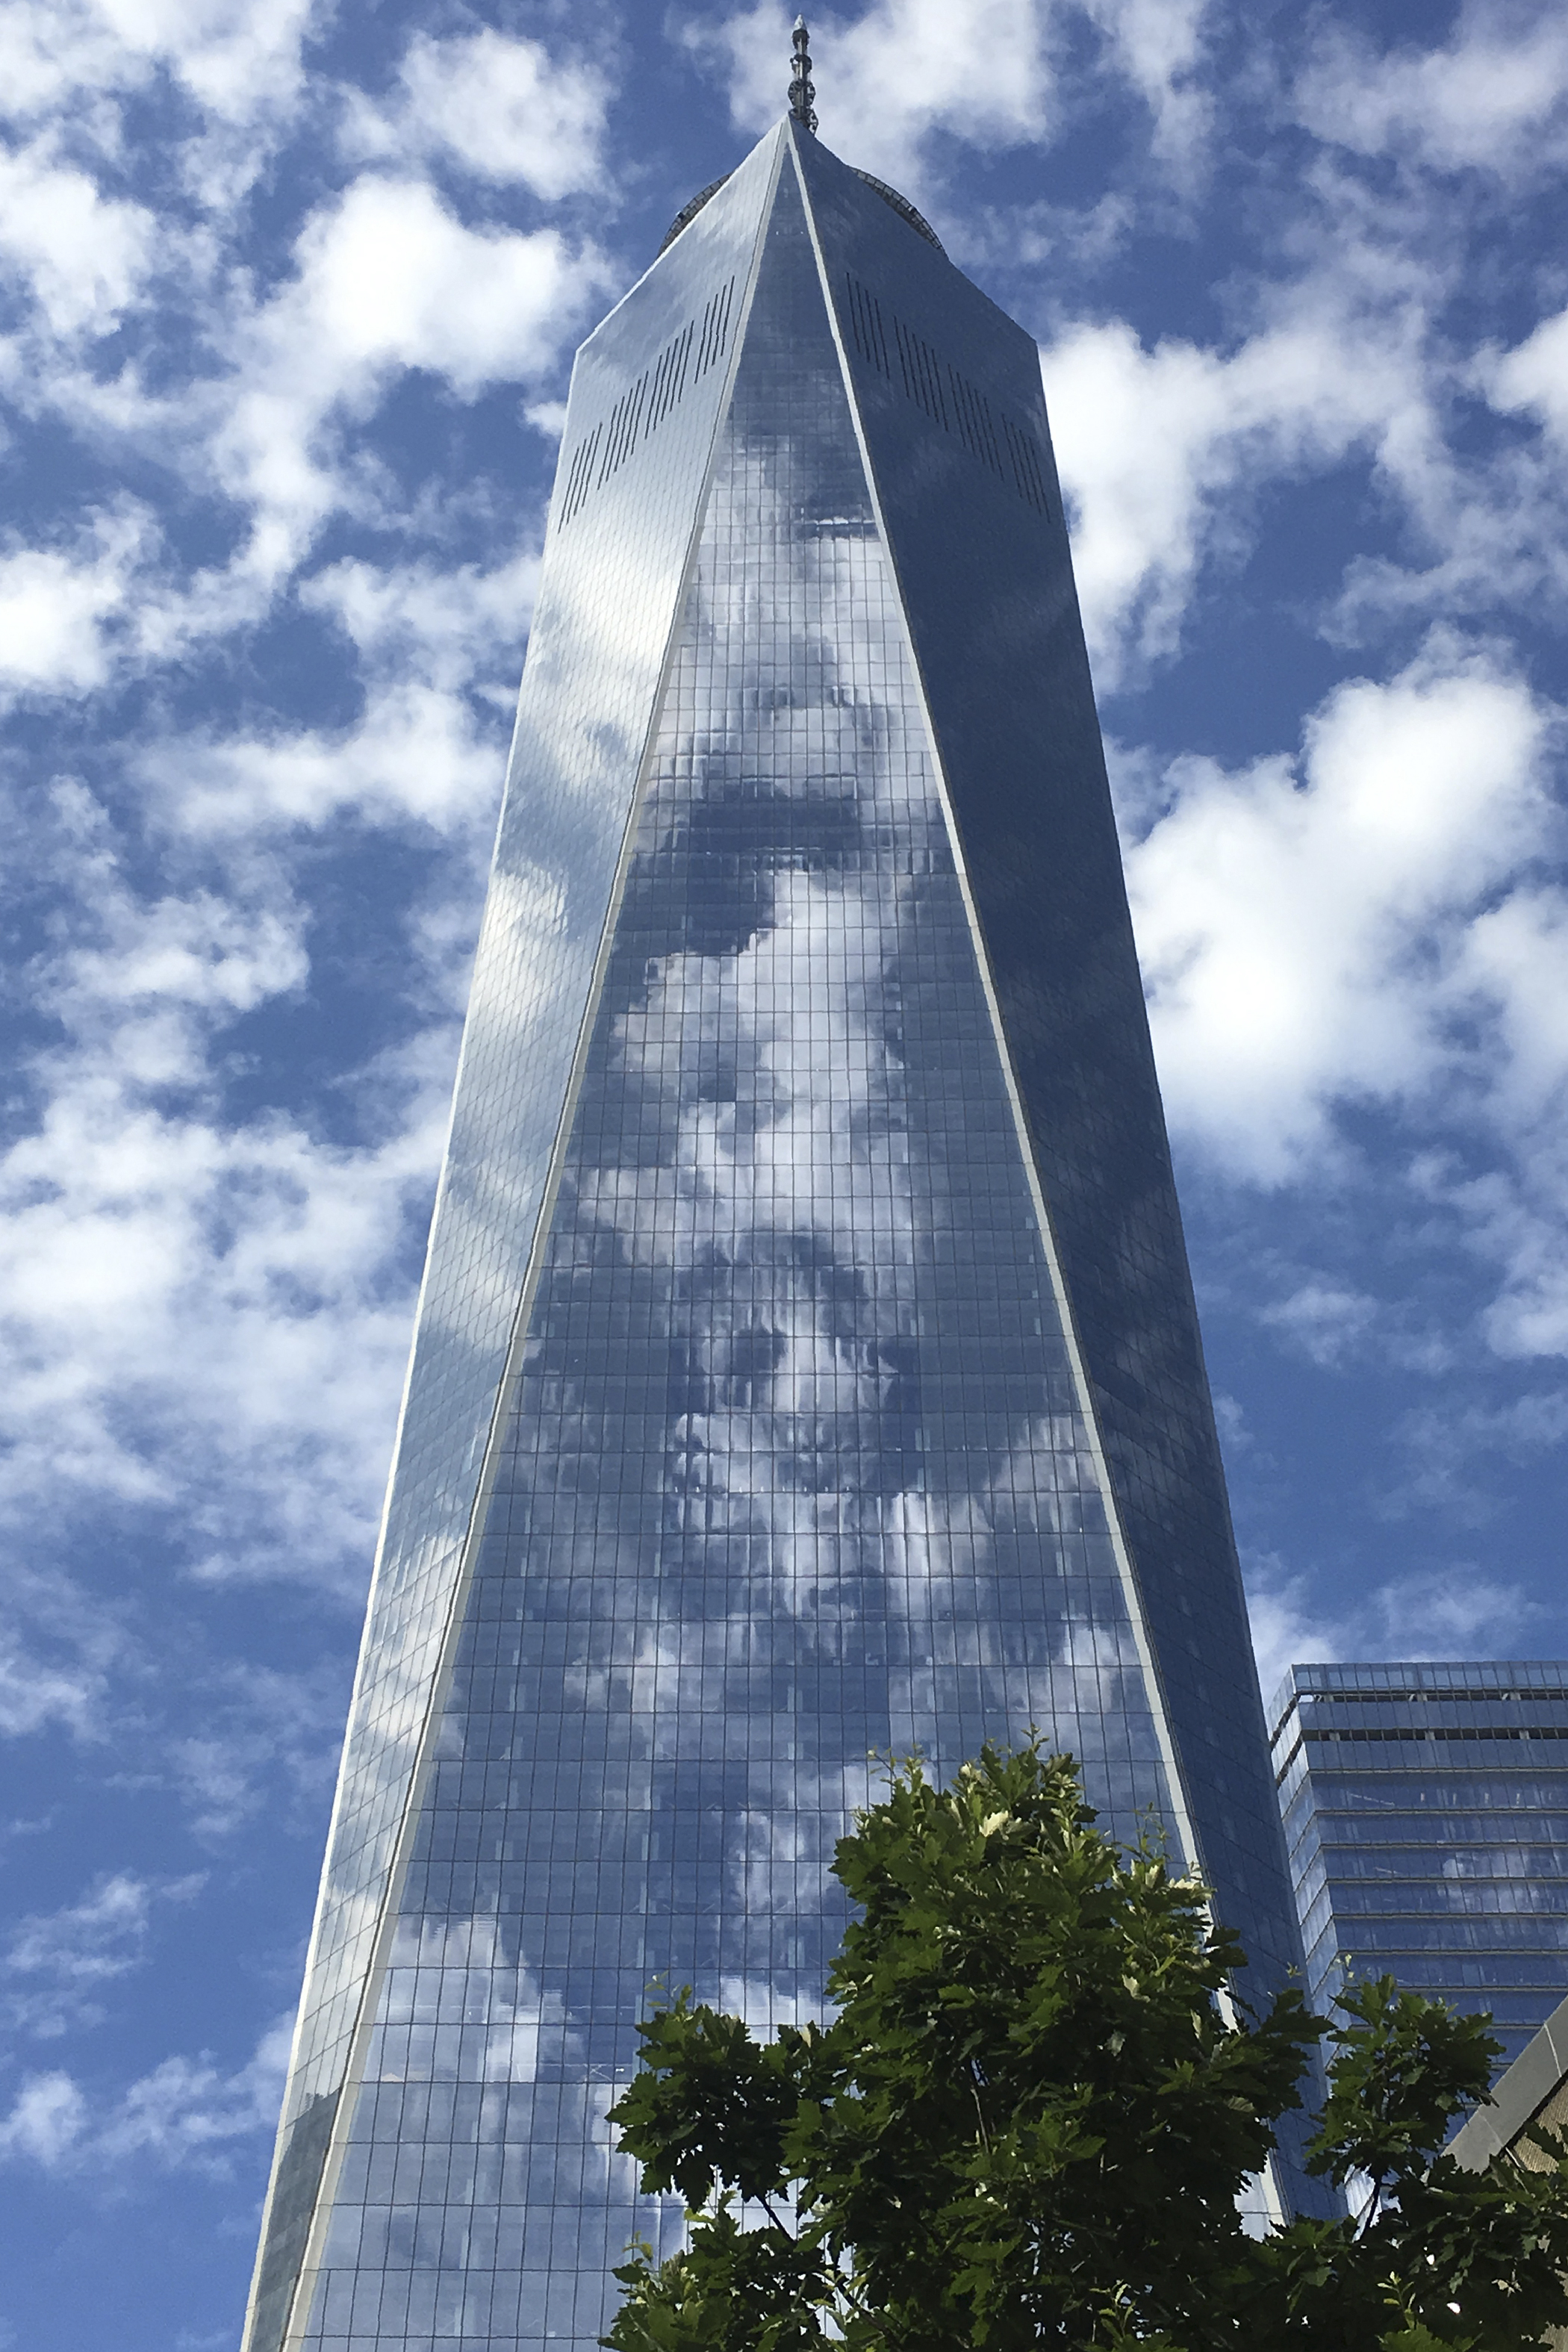 Completed in 2014, at 1,776 feet tall, One World Trade Center is the tallest building in the Western Hemisphere.